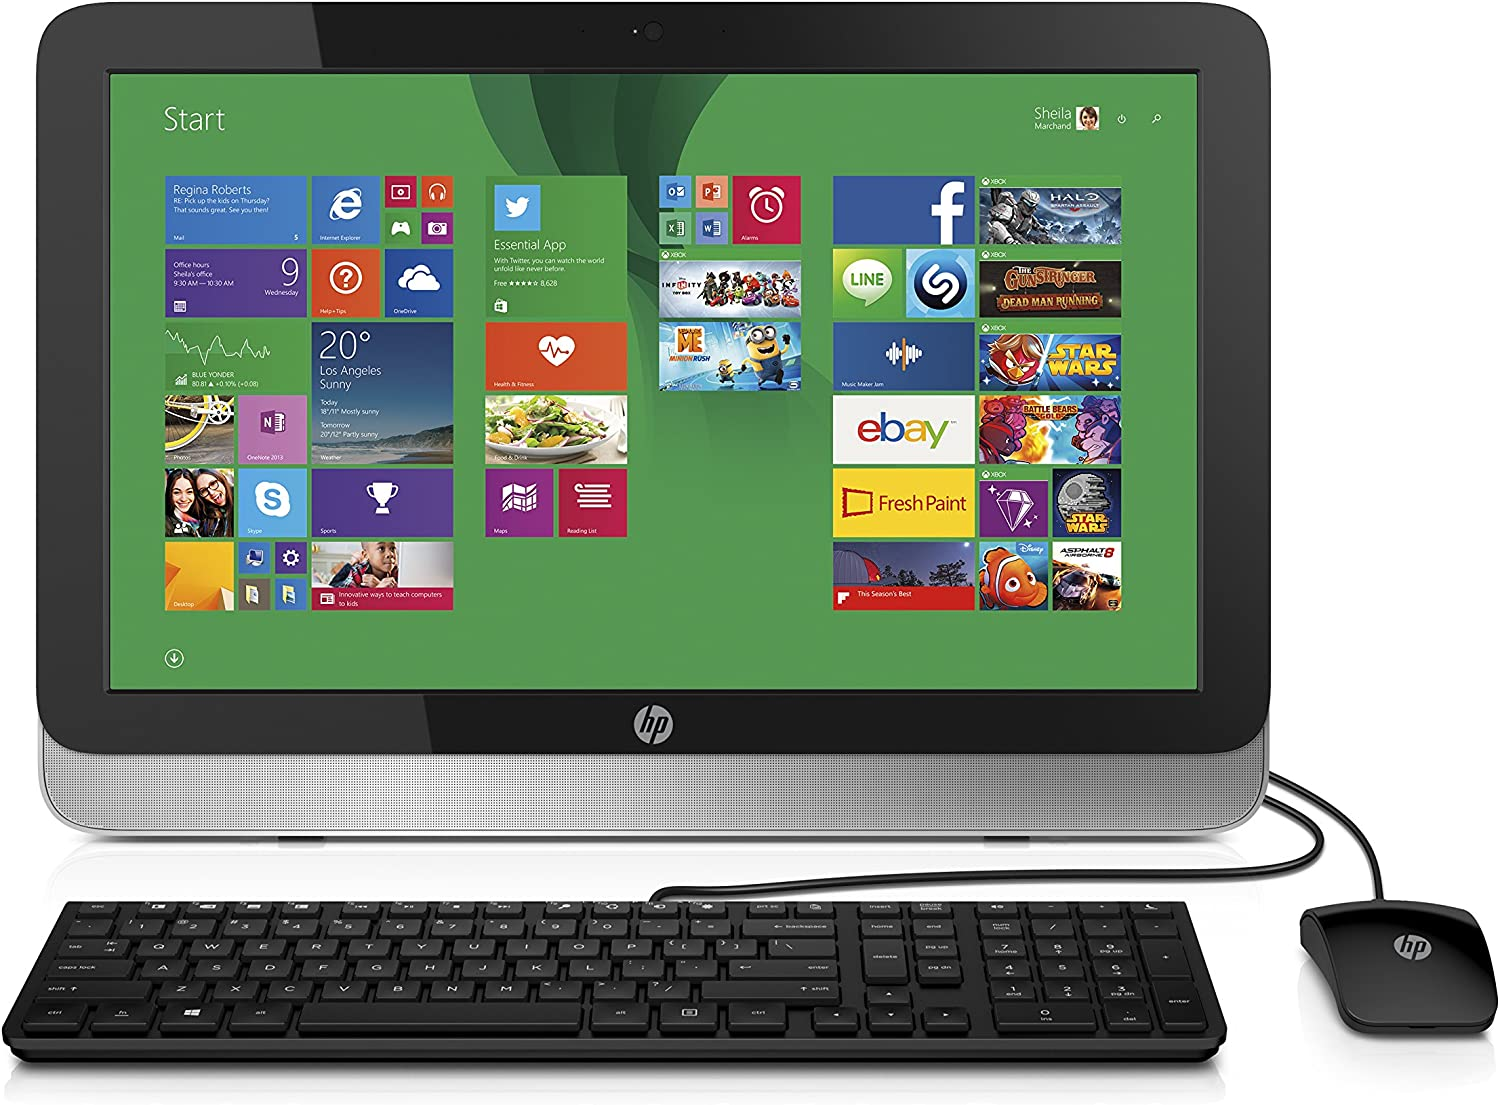 Hp pro 3010 small form factor pc drivers for windows 10, 8, 7.